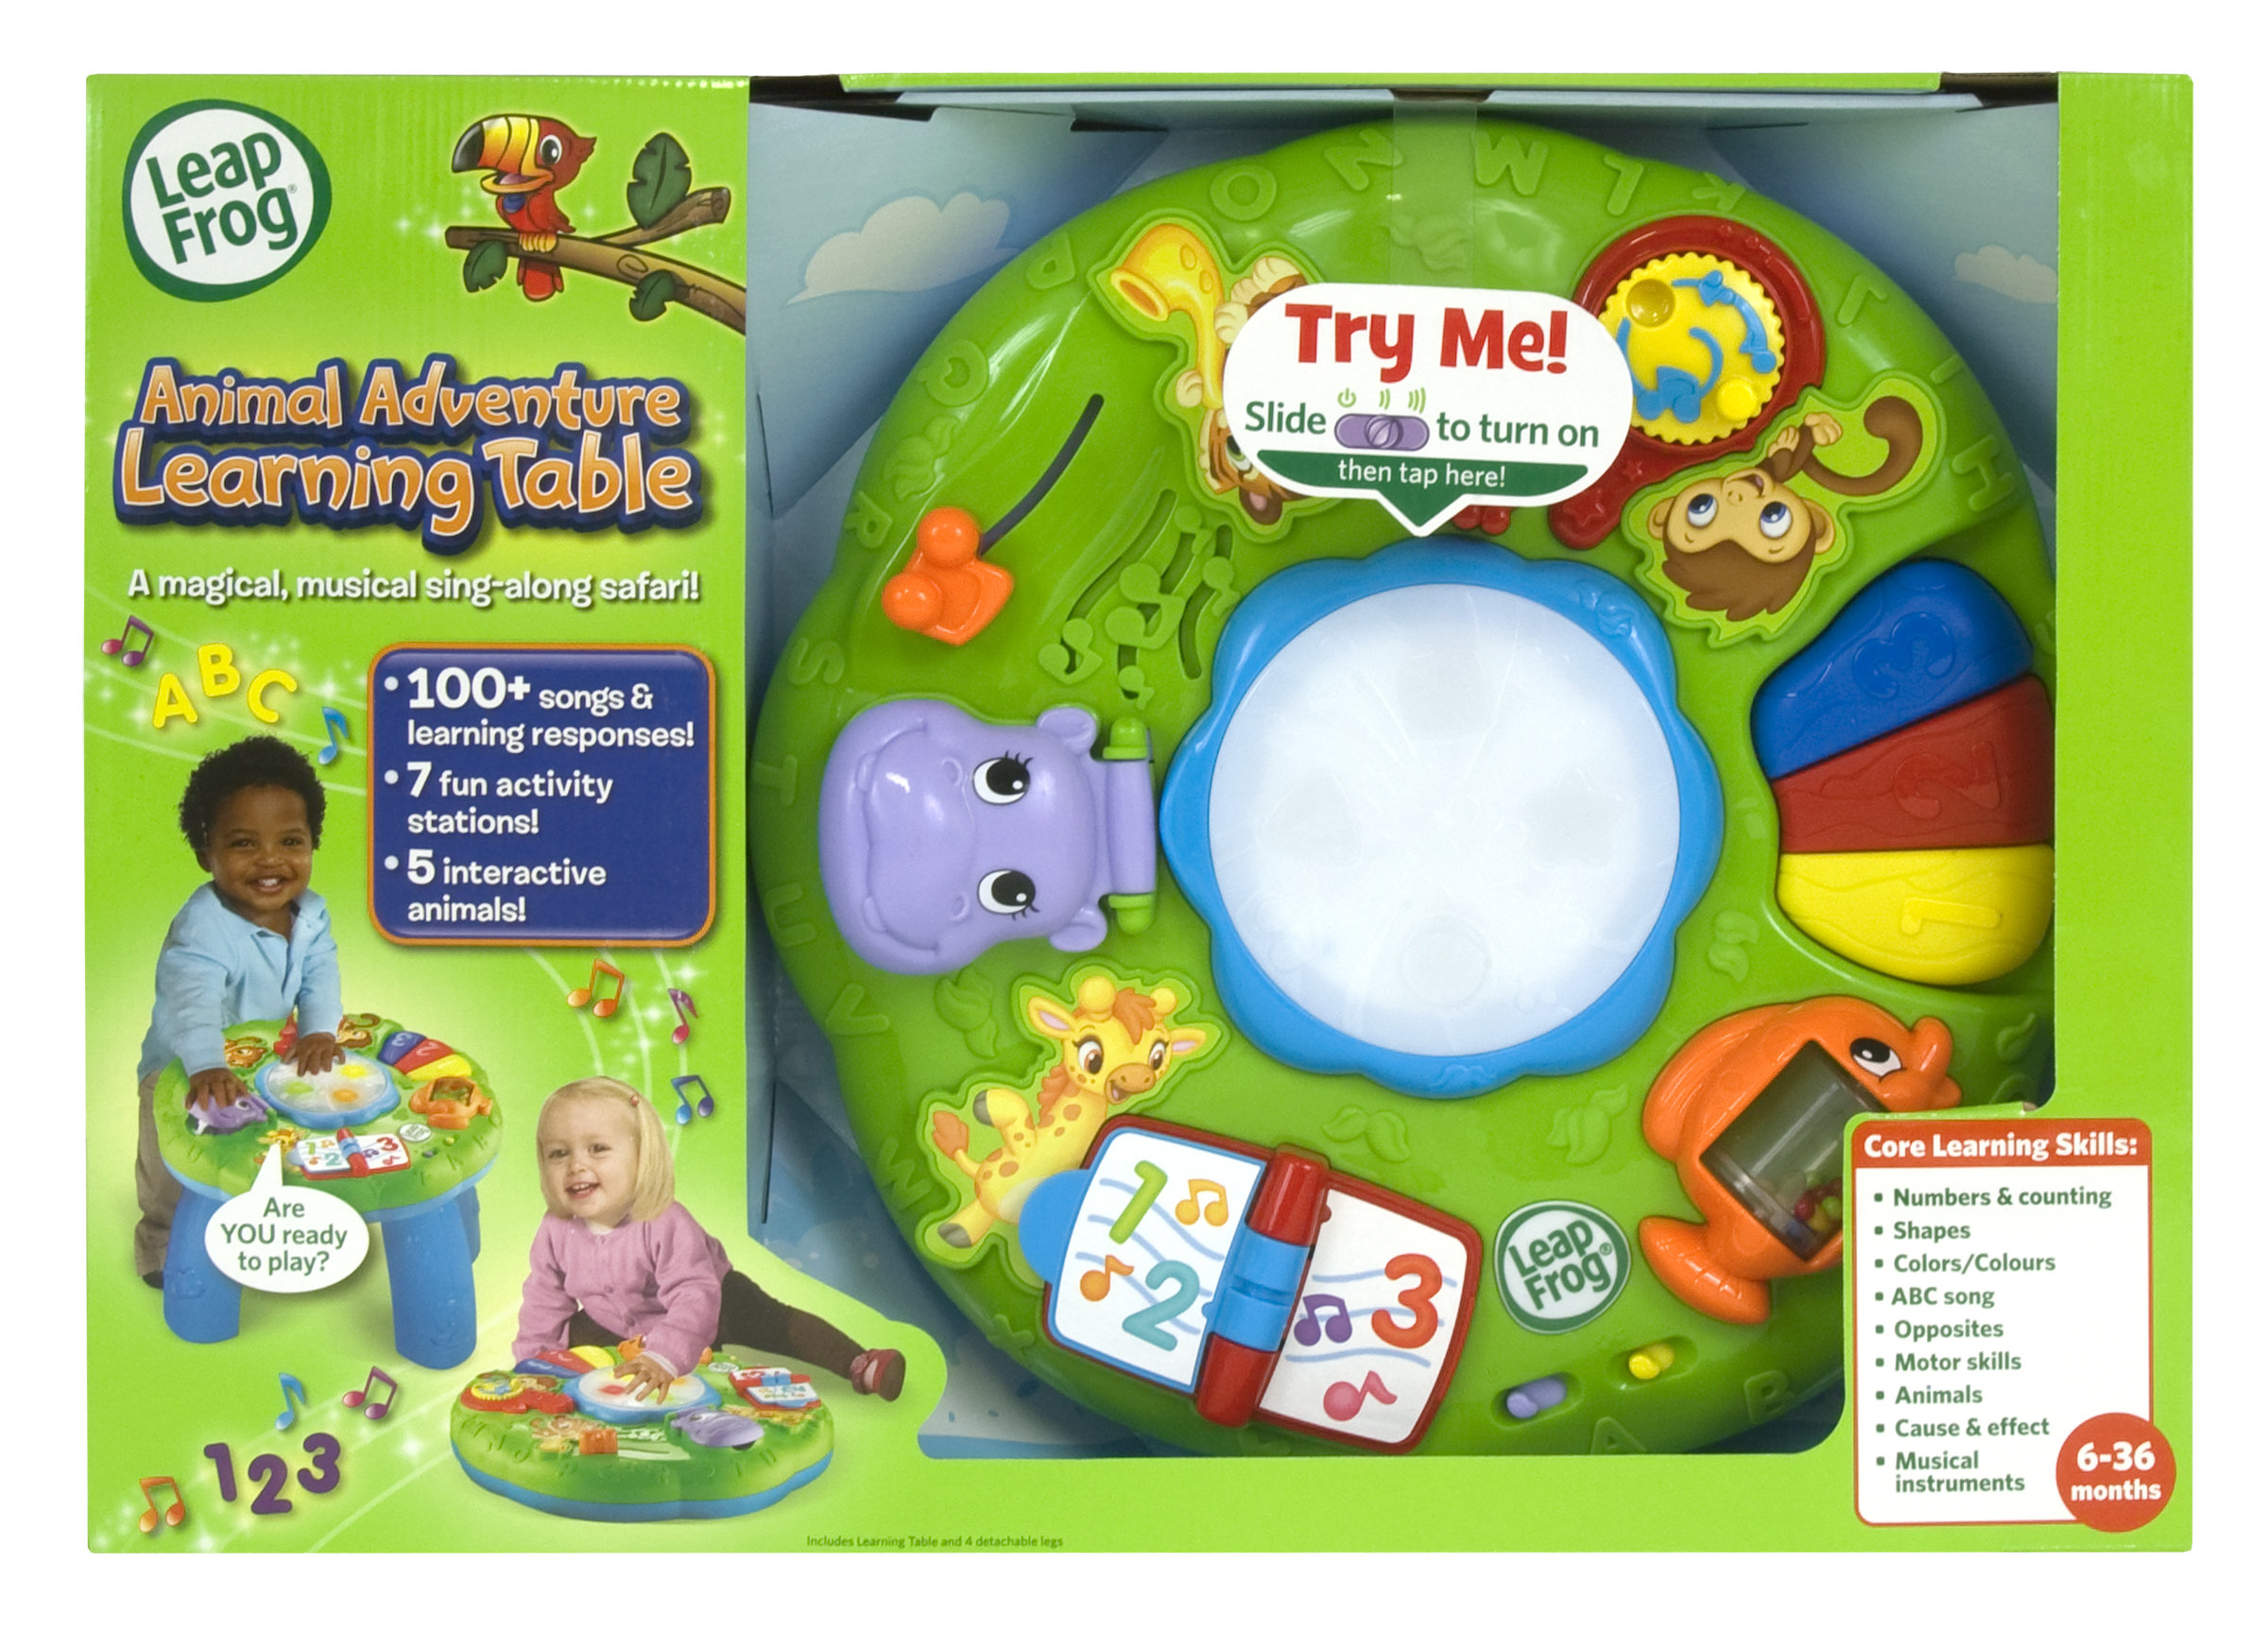 leapfrog animal adventure learning table manual